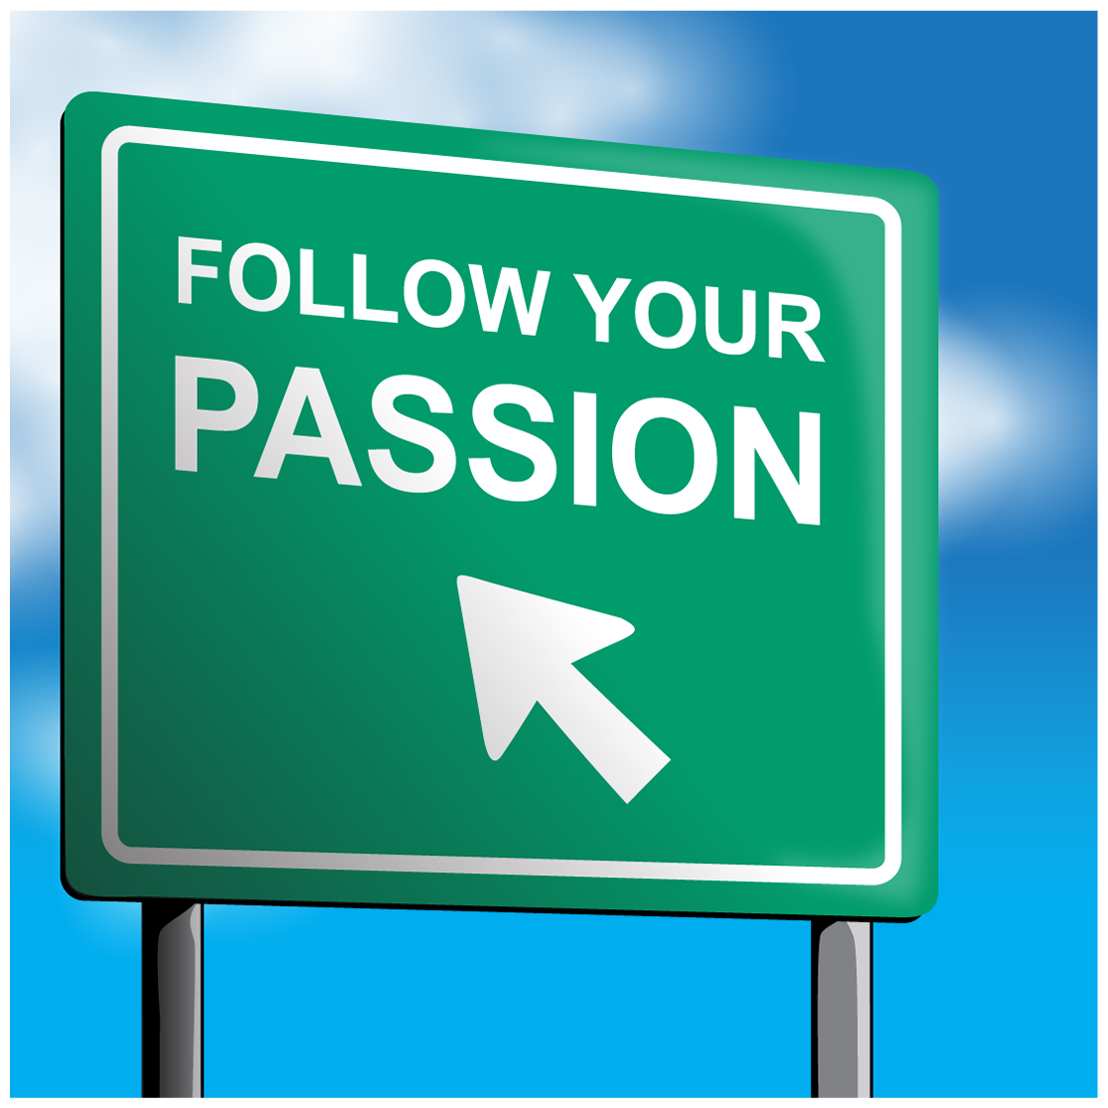 follow_your_passion.jpg